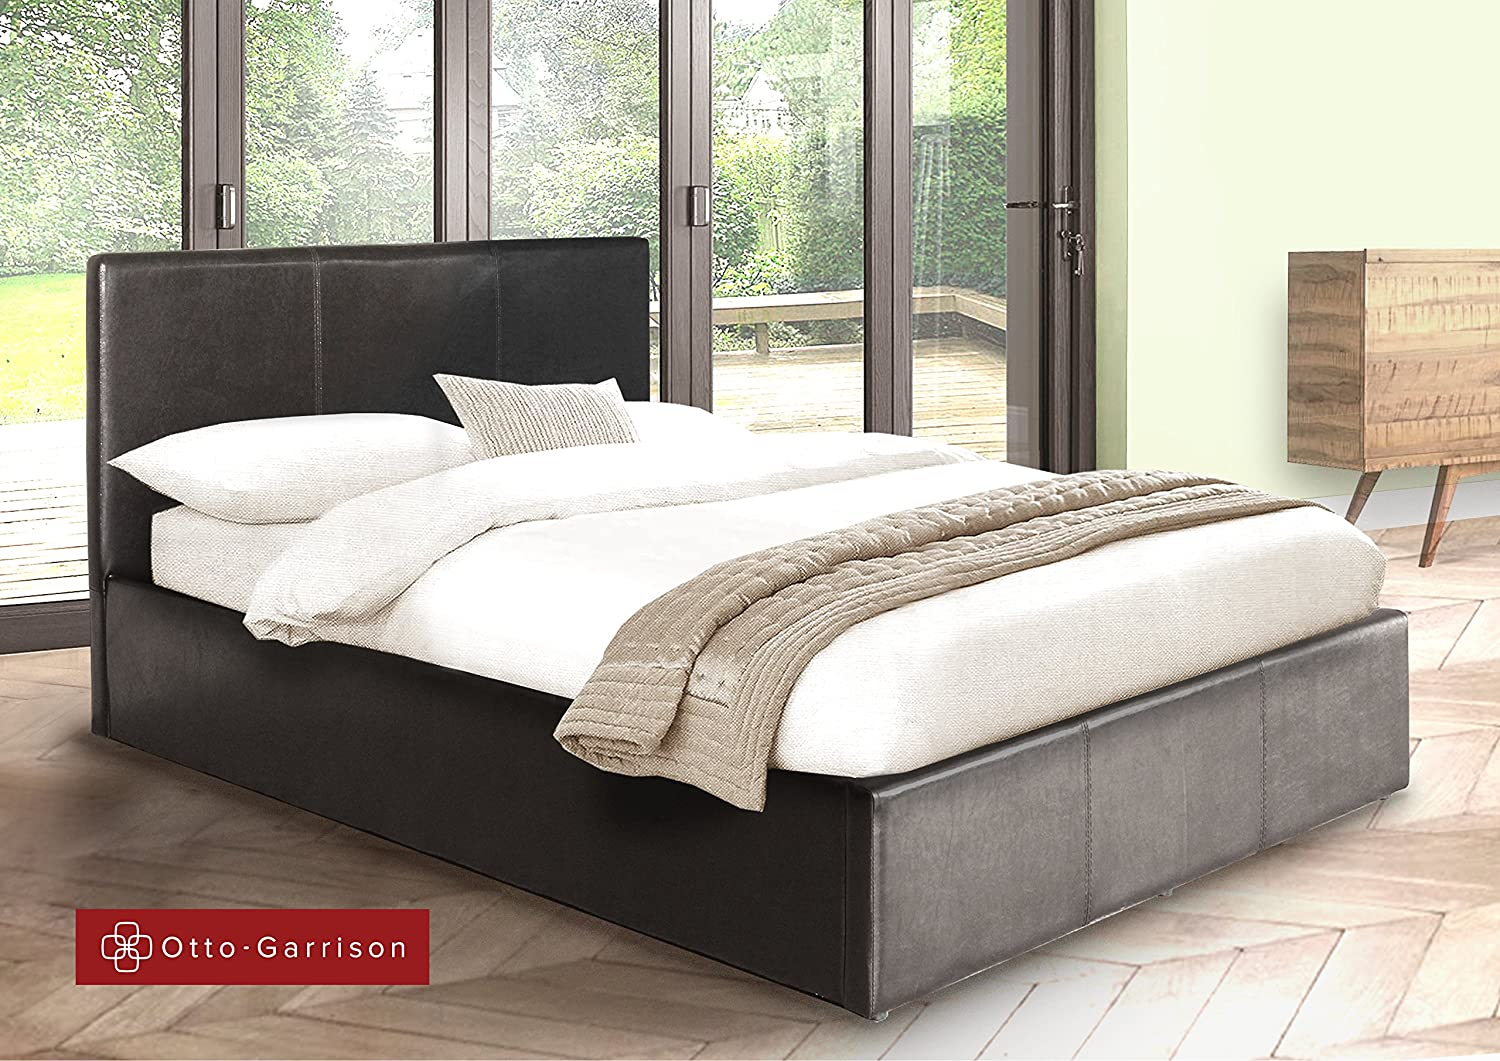 Ottoman Double Storage Bed Upholstered in Faux Leather, 4ft 6, Black:  Amazon.co.uk: Kitchen & Home